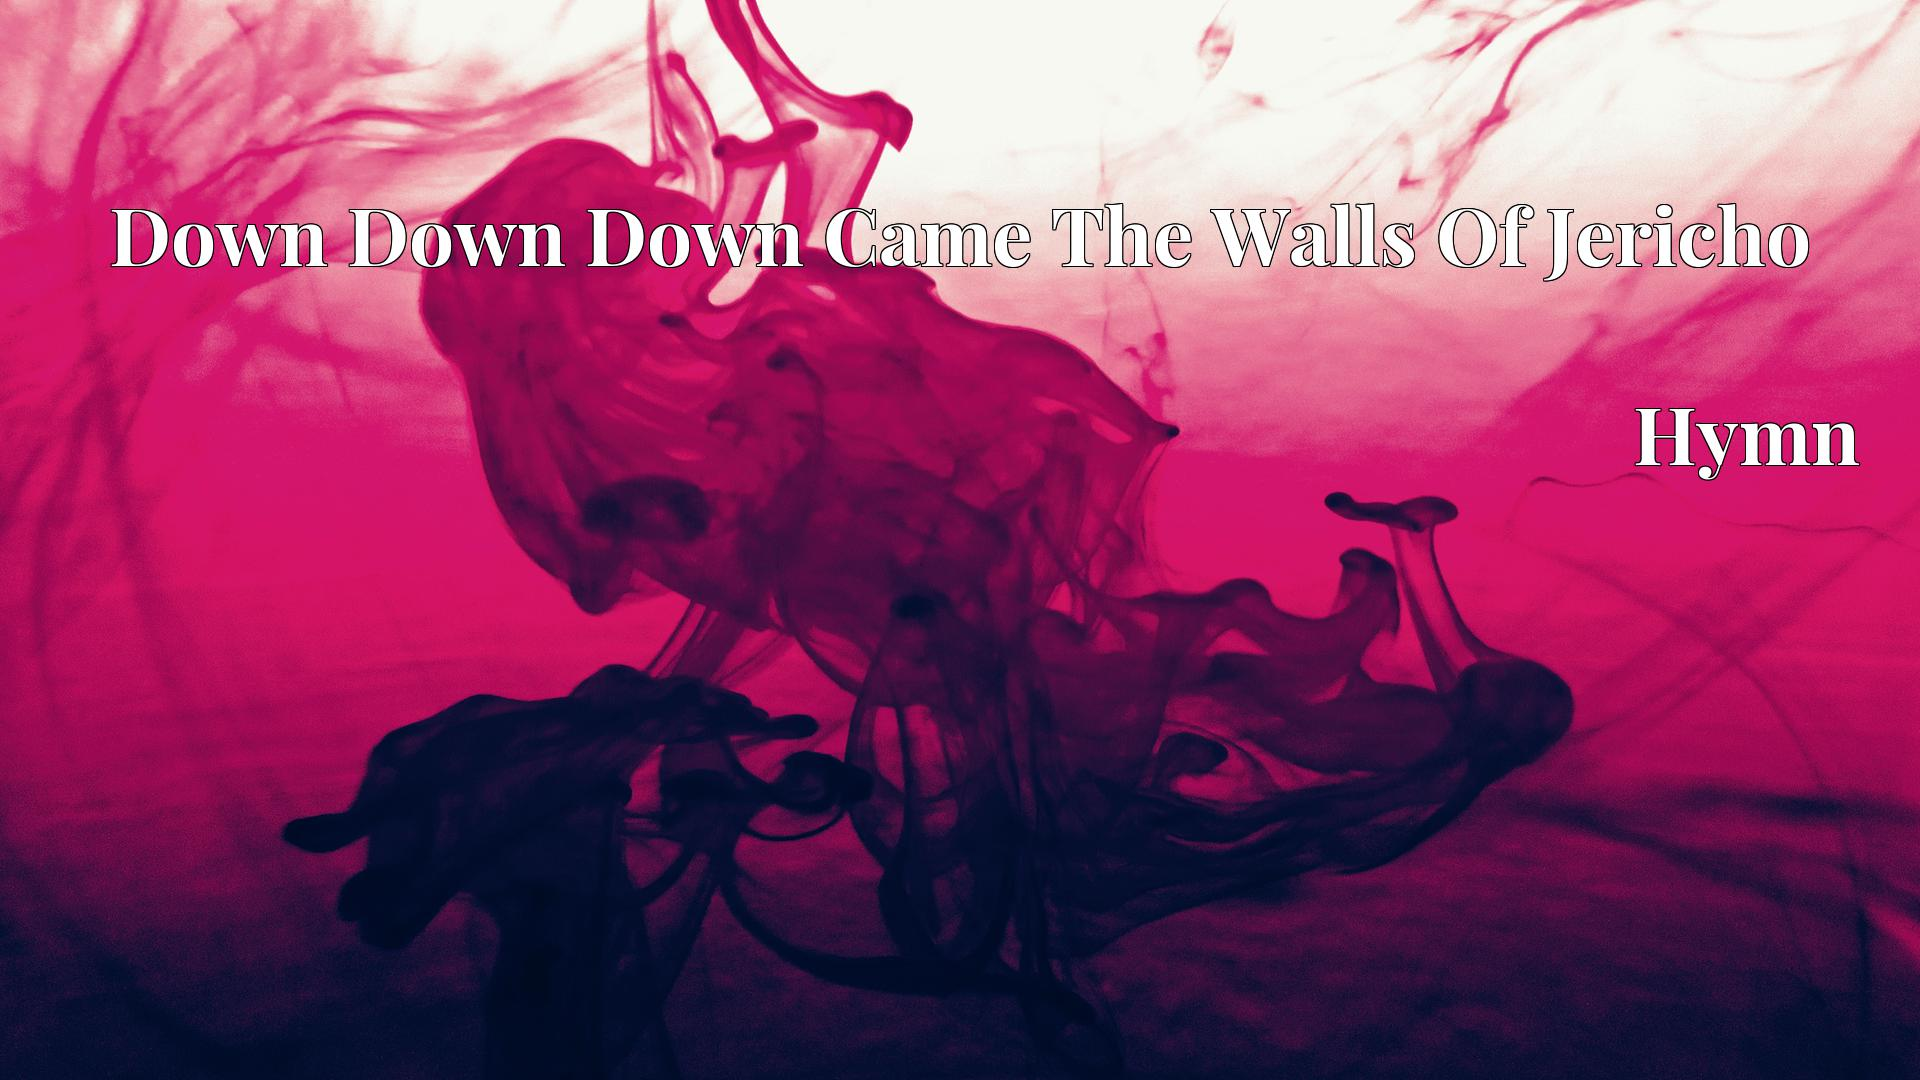 Down Down Down Came The Walls Of Jericho - Hymn